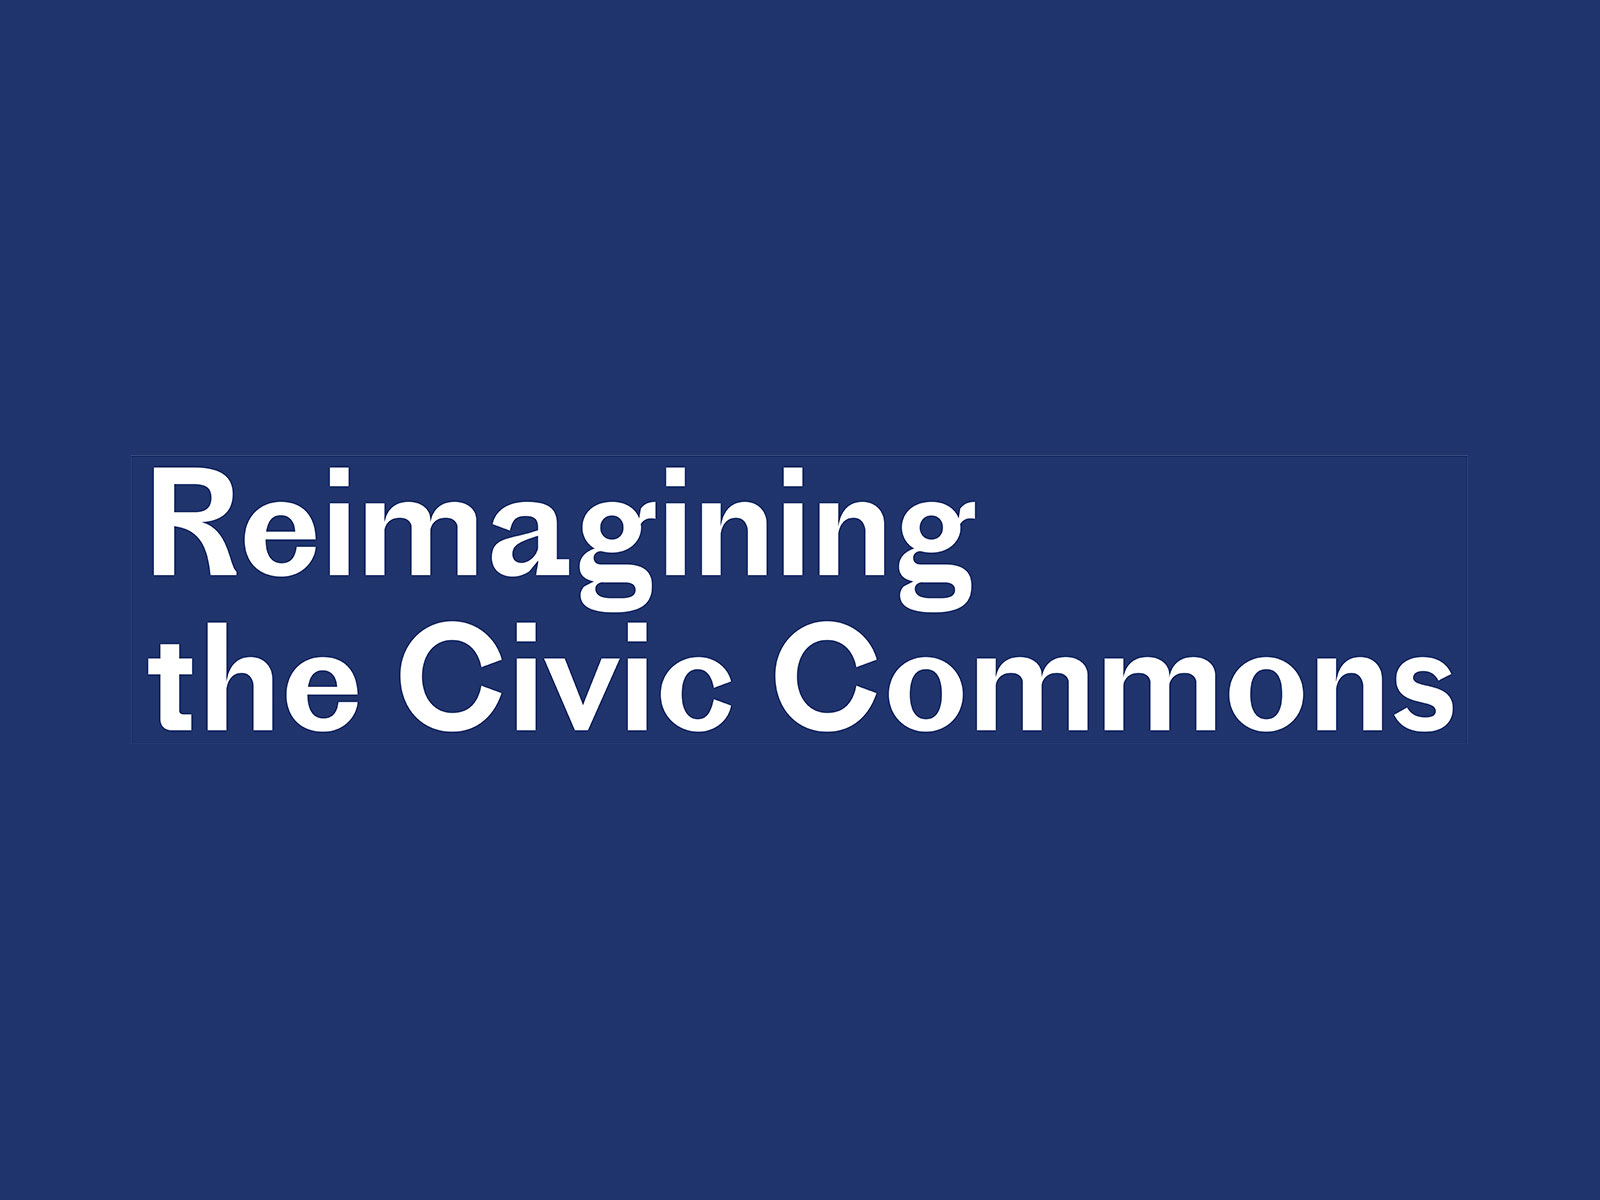 Reimagining the Civic Commons